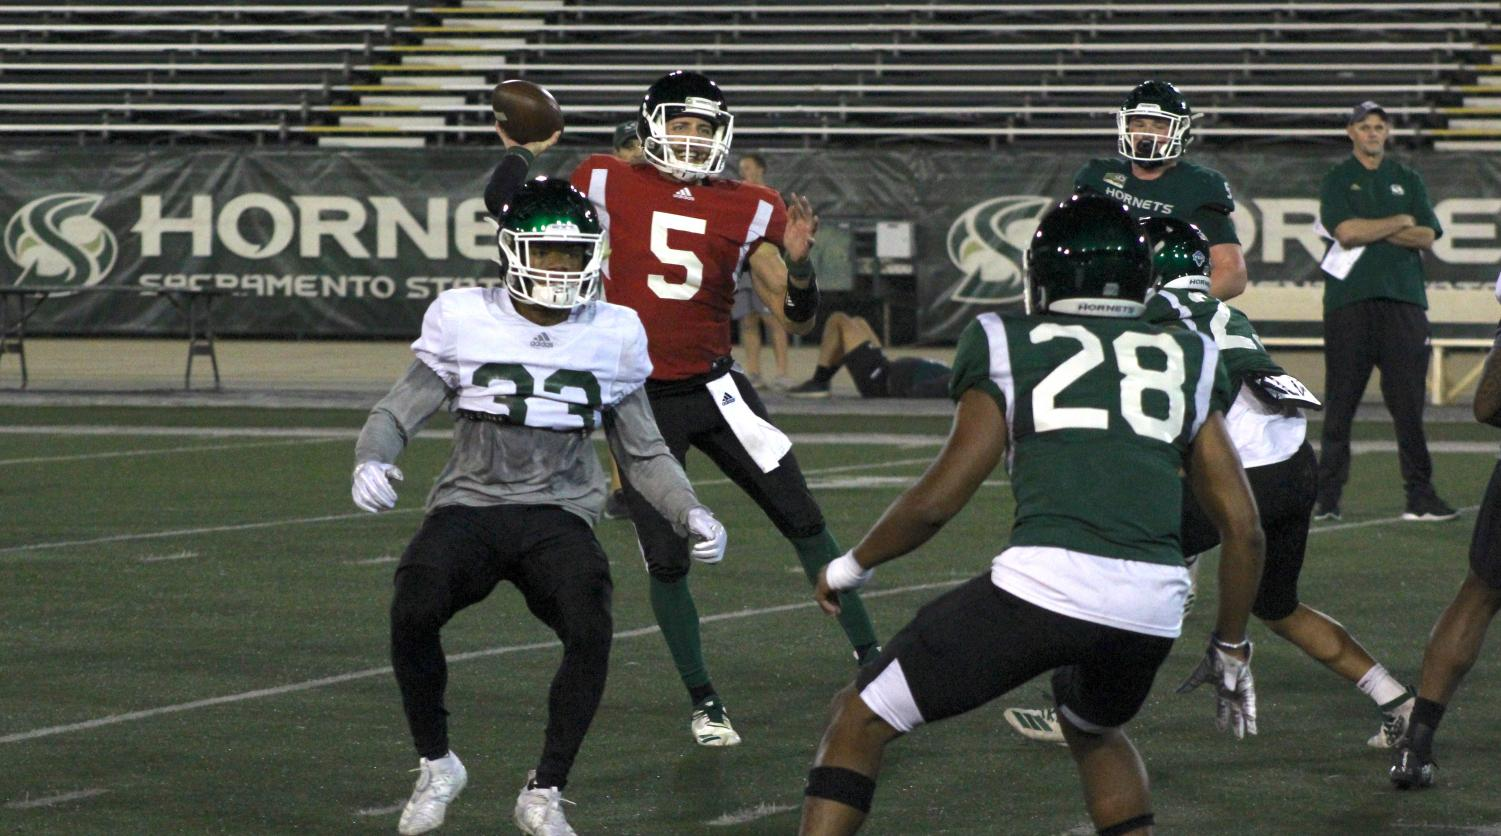 Sac State junior quarterback Kevin Thomson throws a pass during practice Tuesday, Nov. 19 at Hornet Stadium. The Hornets play UC Davis in the 66th annual Causeway Classic on Saturday.